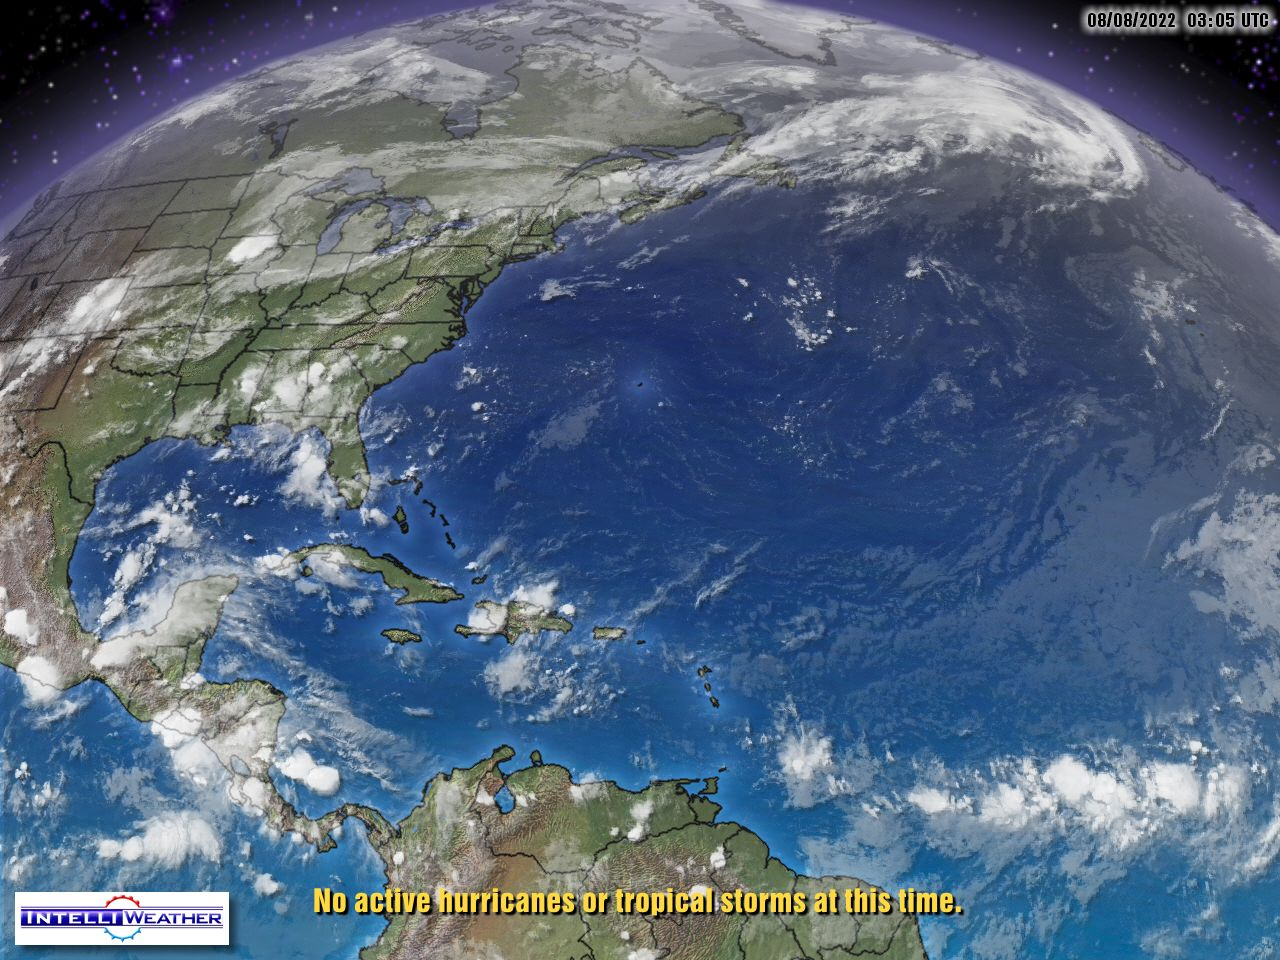 http://www.intelliweather.net/imagery/intelliweather/hurrtrack-sat_atlantic_halfdisk_1280x960.jpg